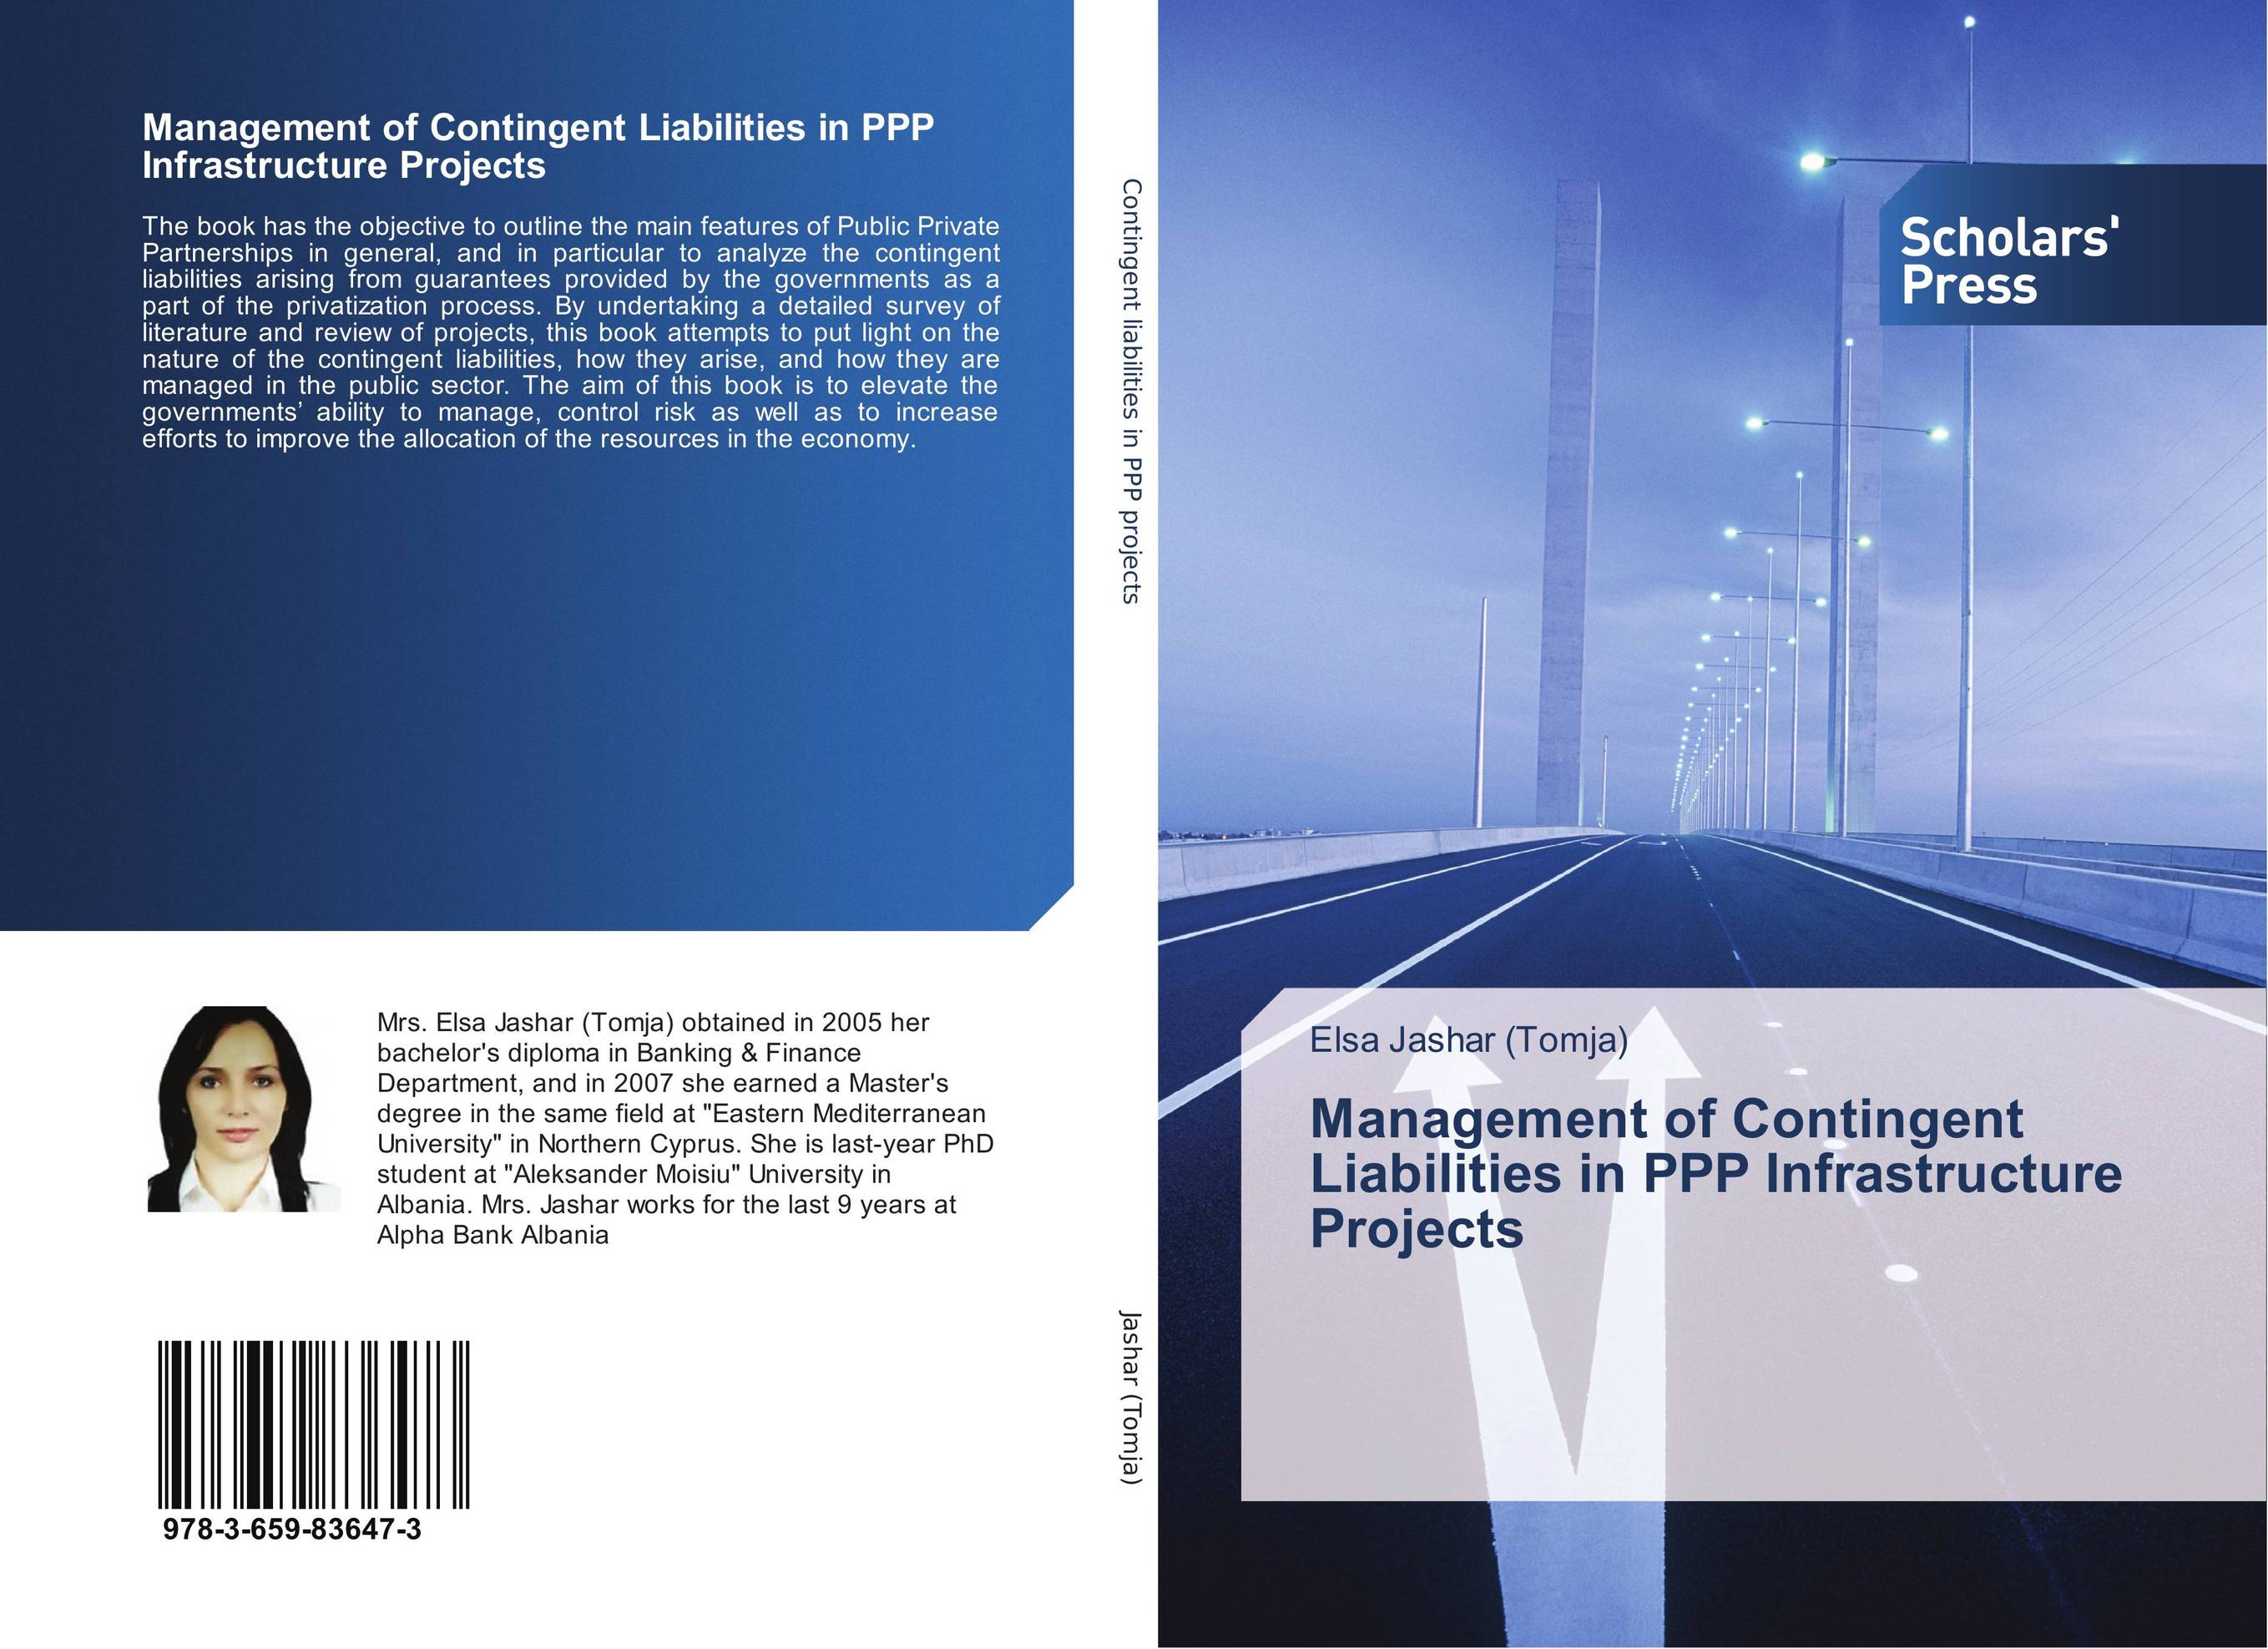 Management of Contingent Liabilities in PPP Infrastructure Projects